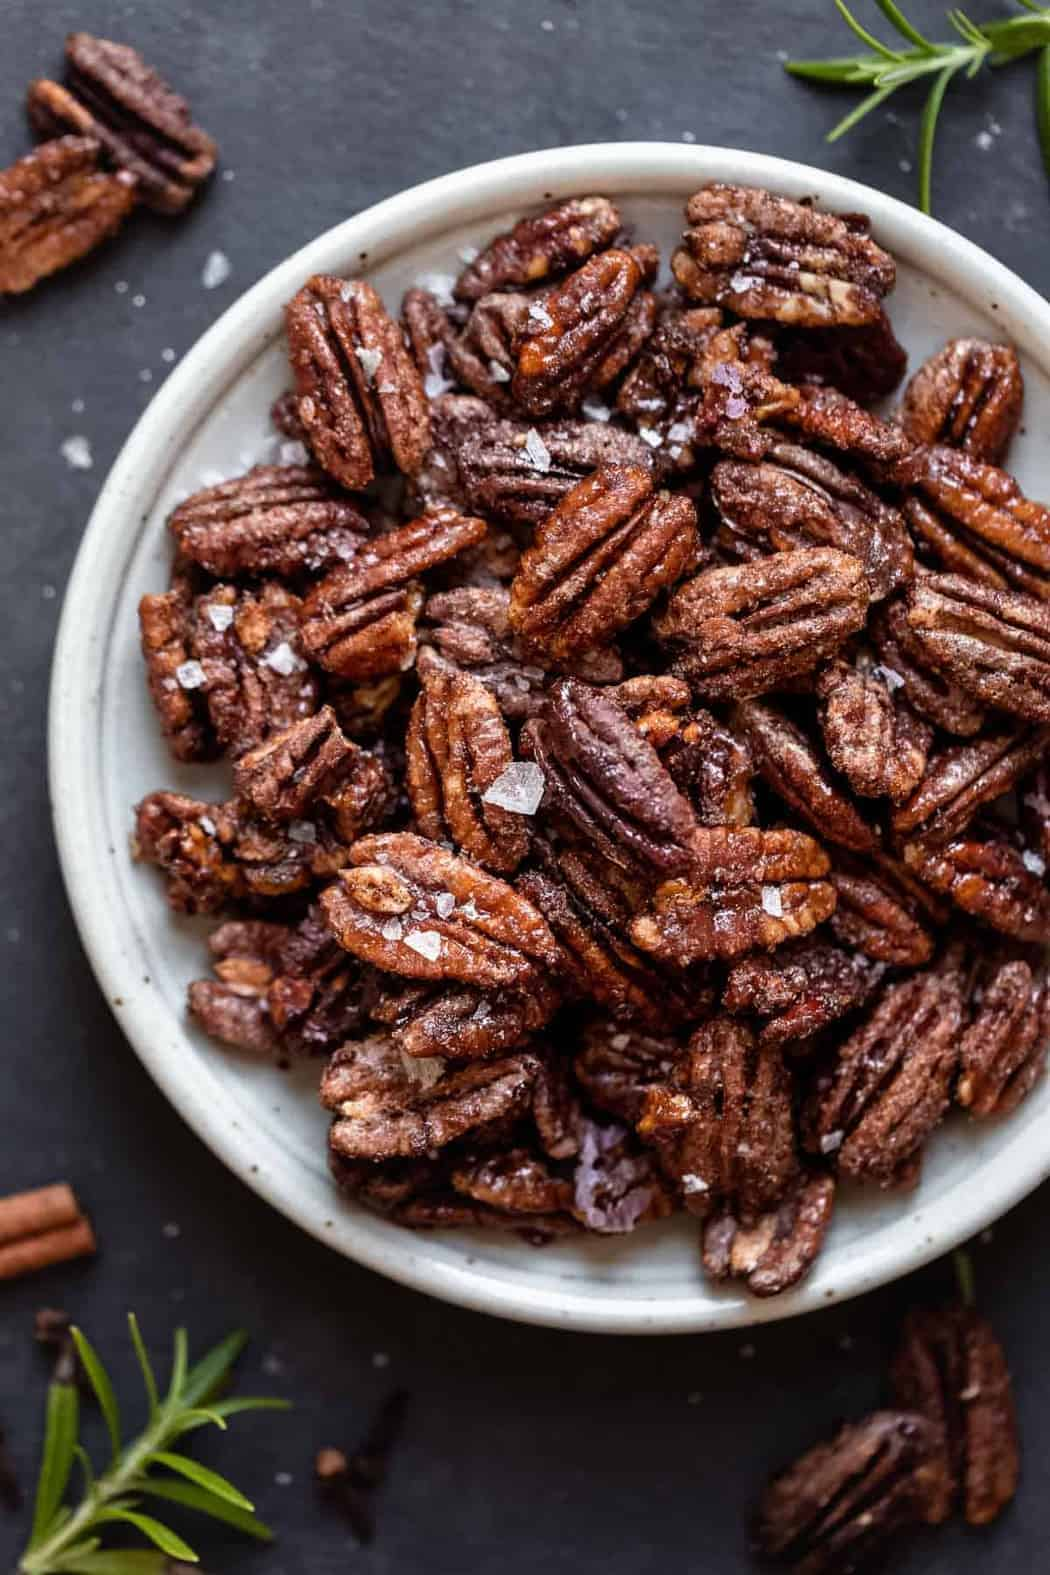 Overhead view of Holiday Spiced Pecans on a white plate.